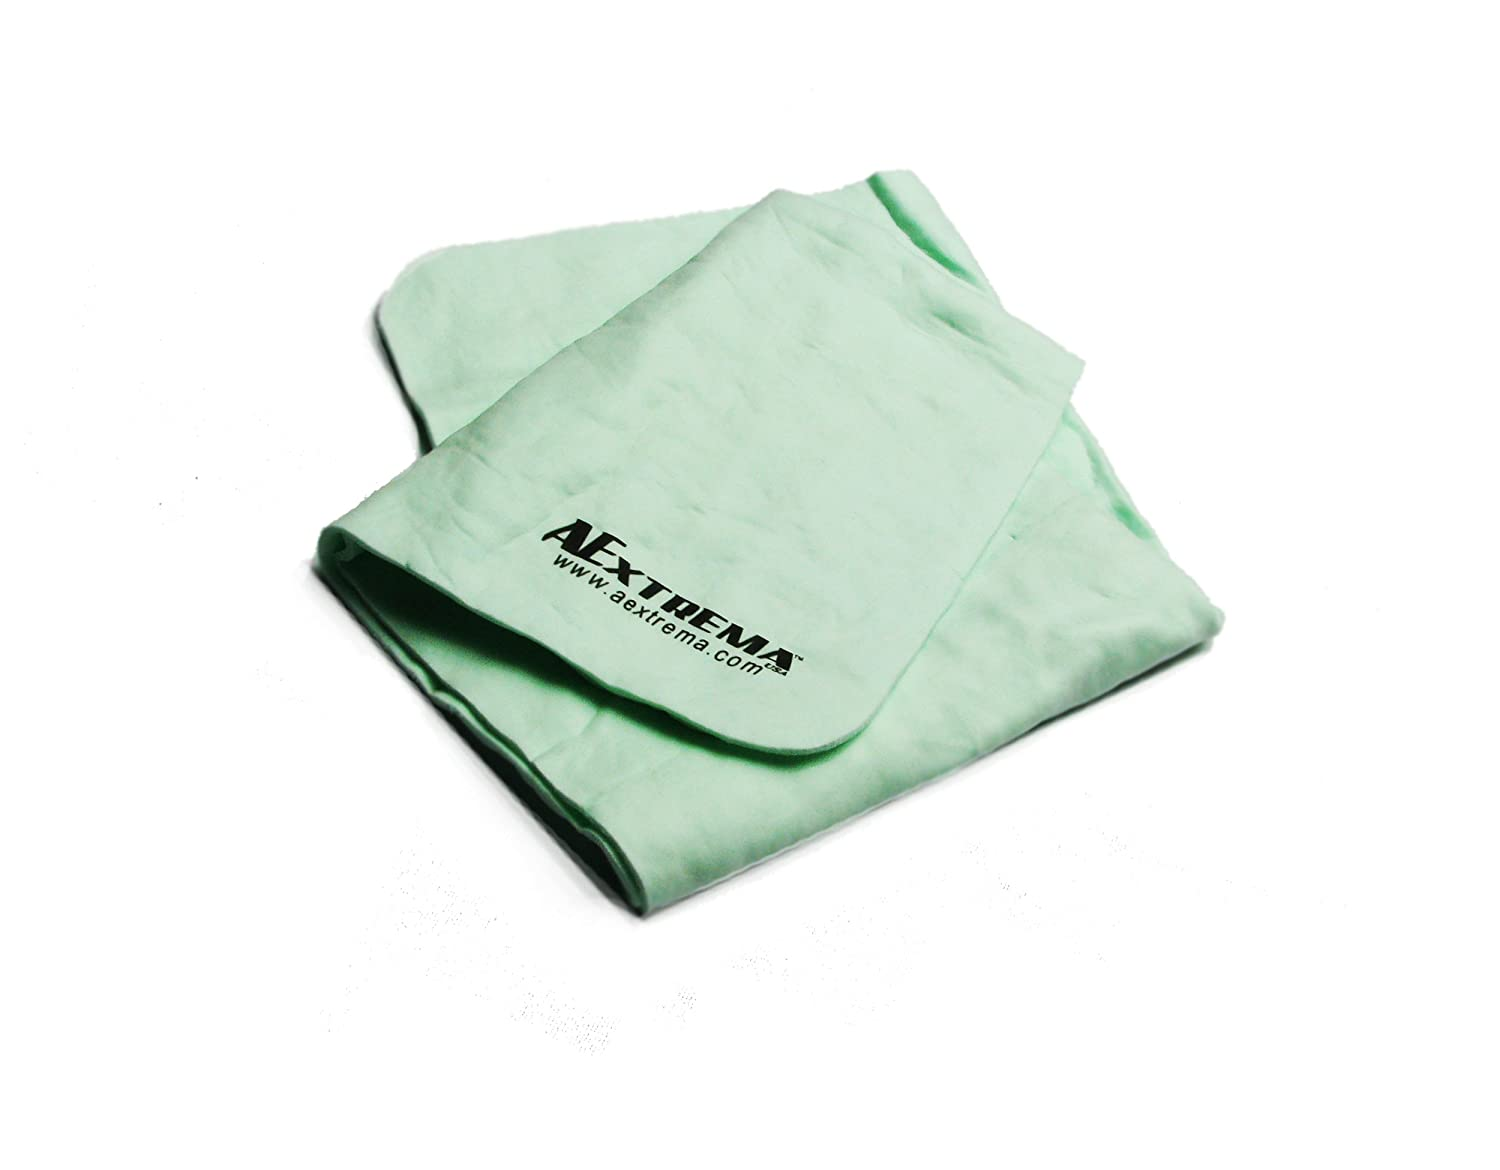 Amazon.com : AExtrema Sport Towel (Green/Regular) : Camping Towels : Sports & Outdoors